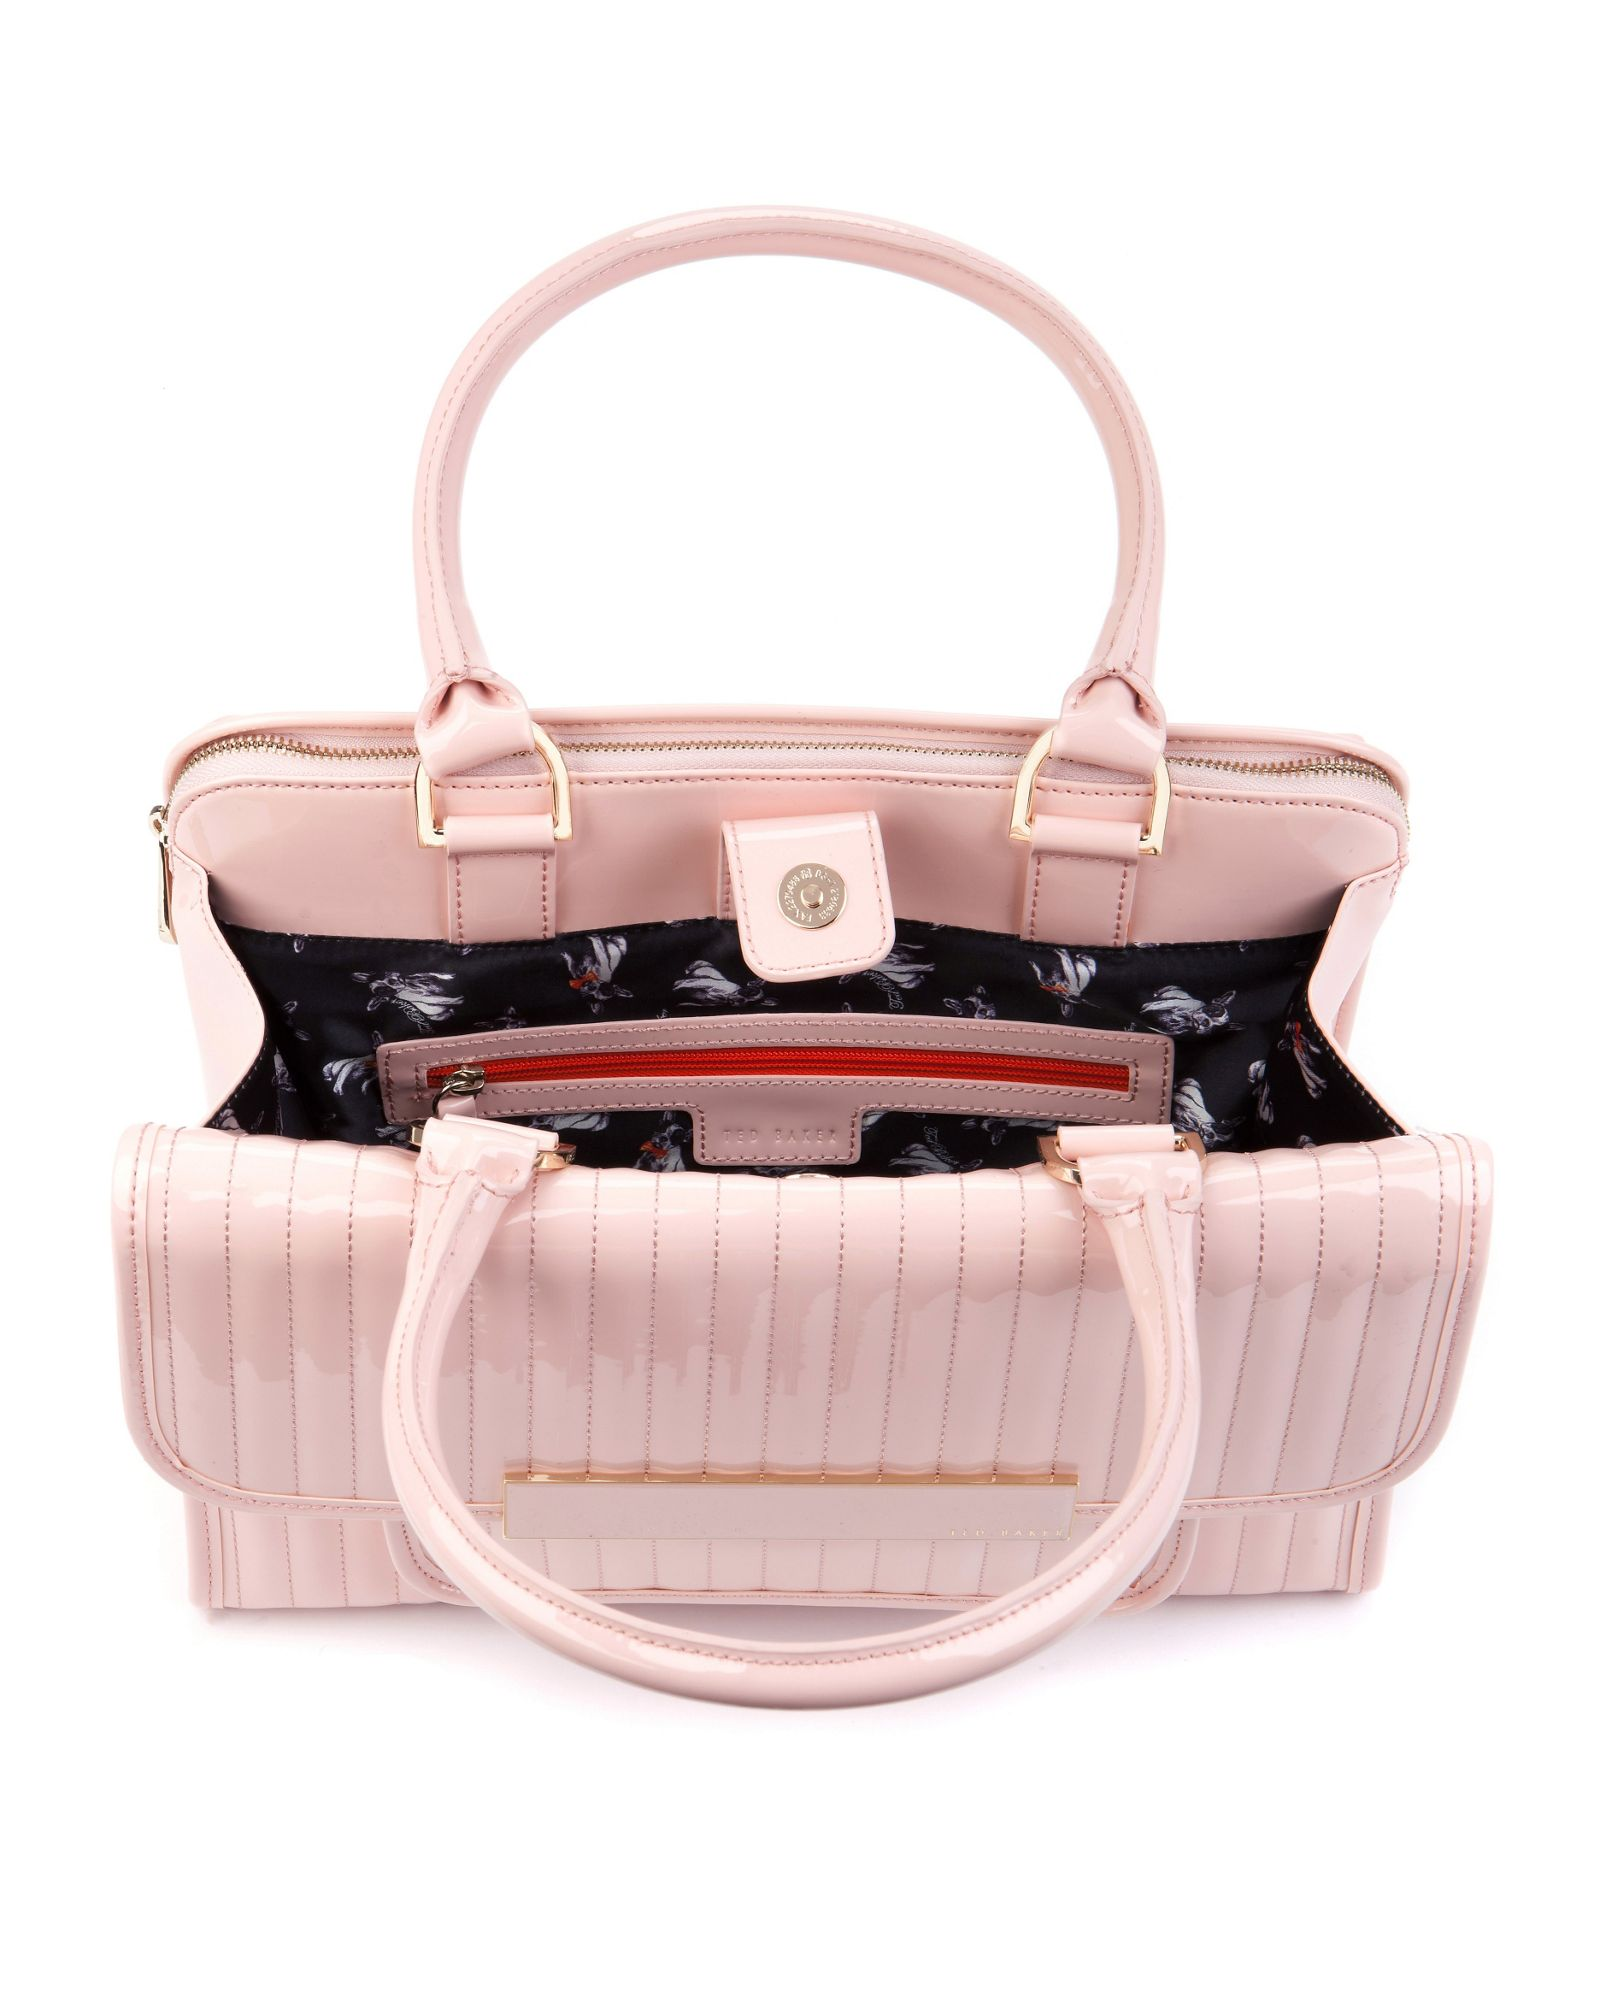 Ted baker Mardun Patent Quilted Tote Bag in Pink | Lyst : ted baker quilted tote bag - Adamdwight.com